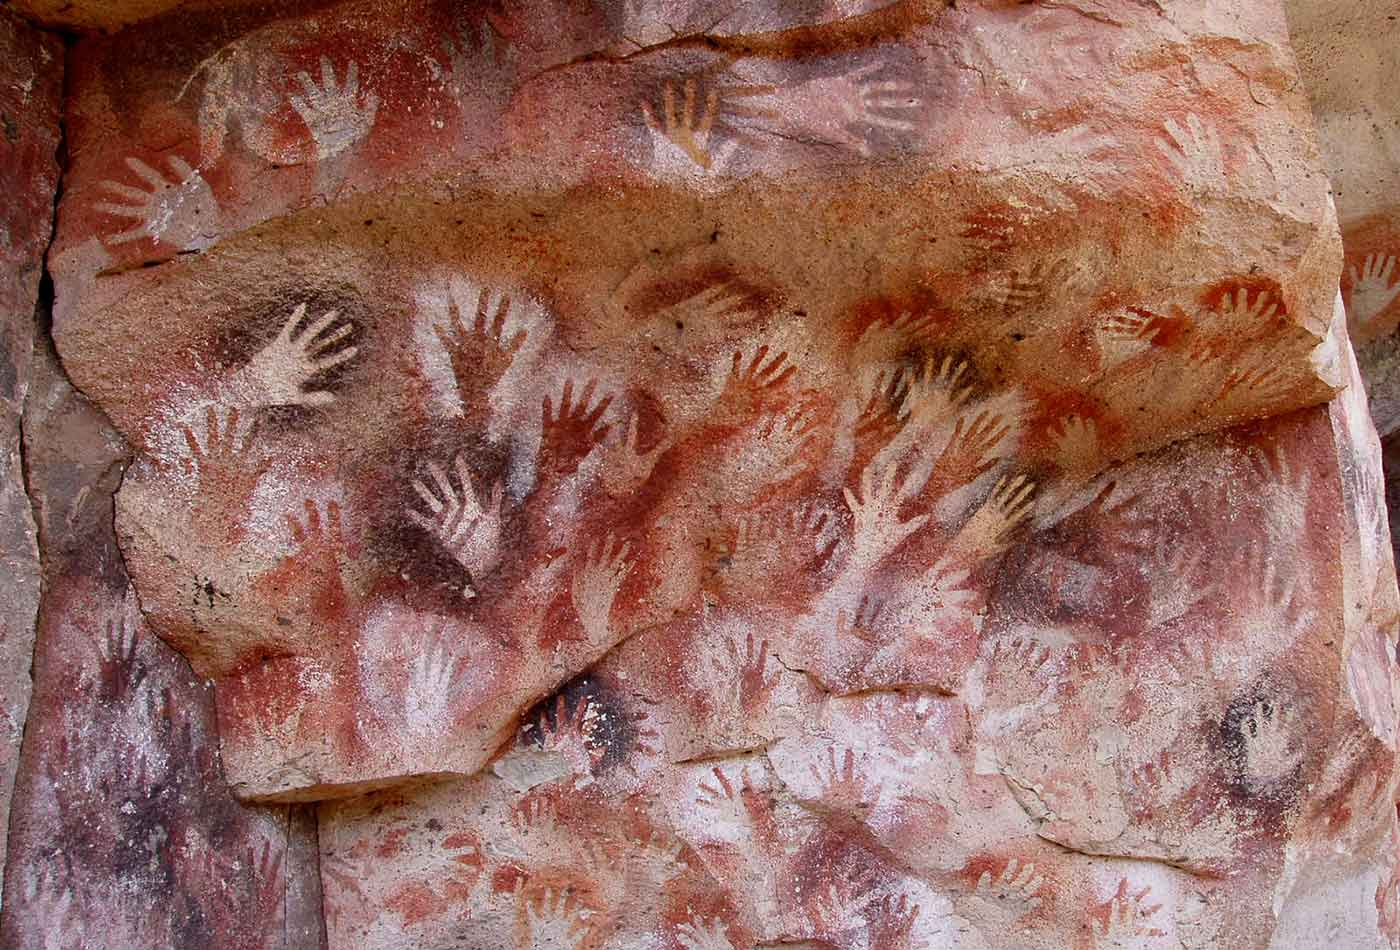 Hands at the Cuevas de las Manos upon Río Pinturas.